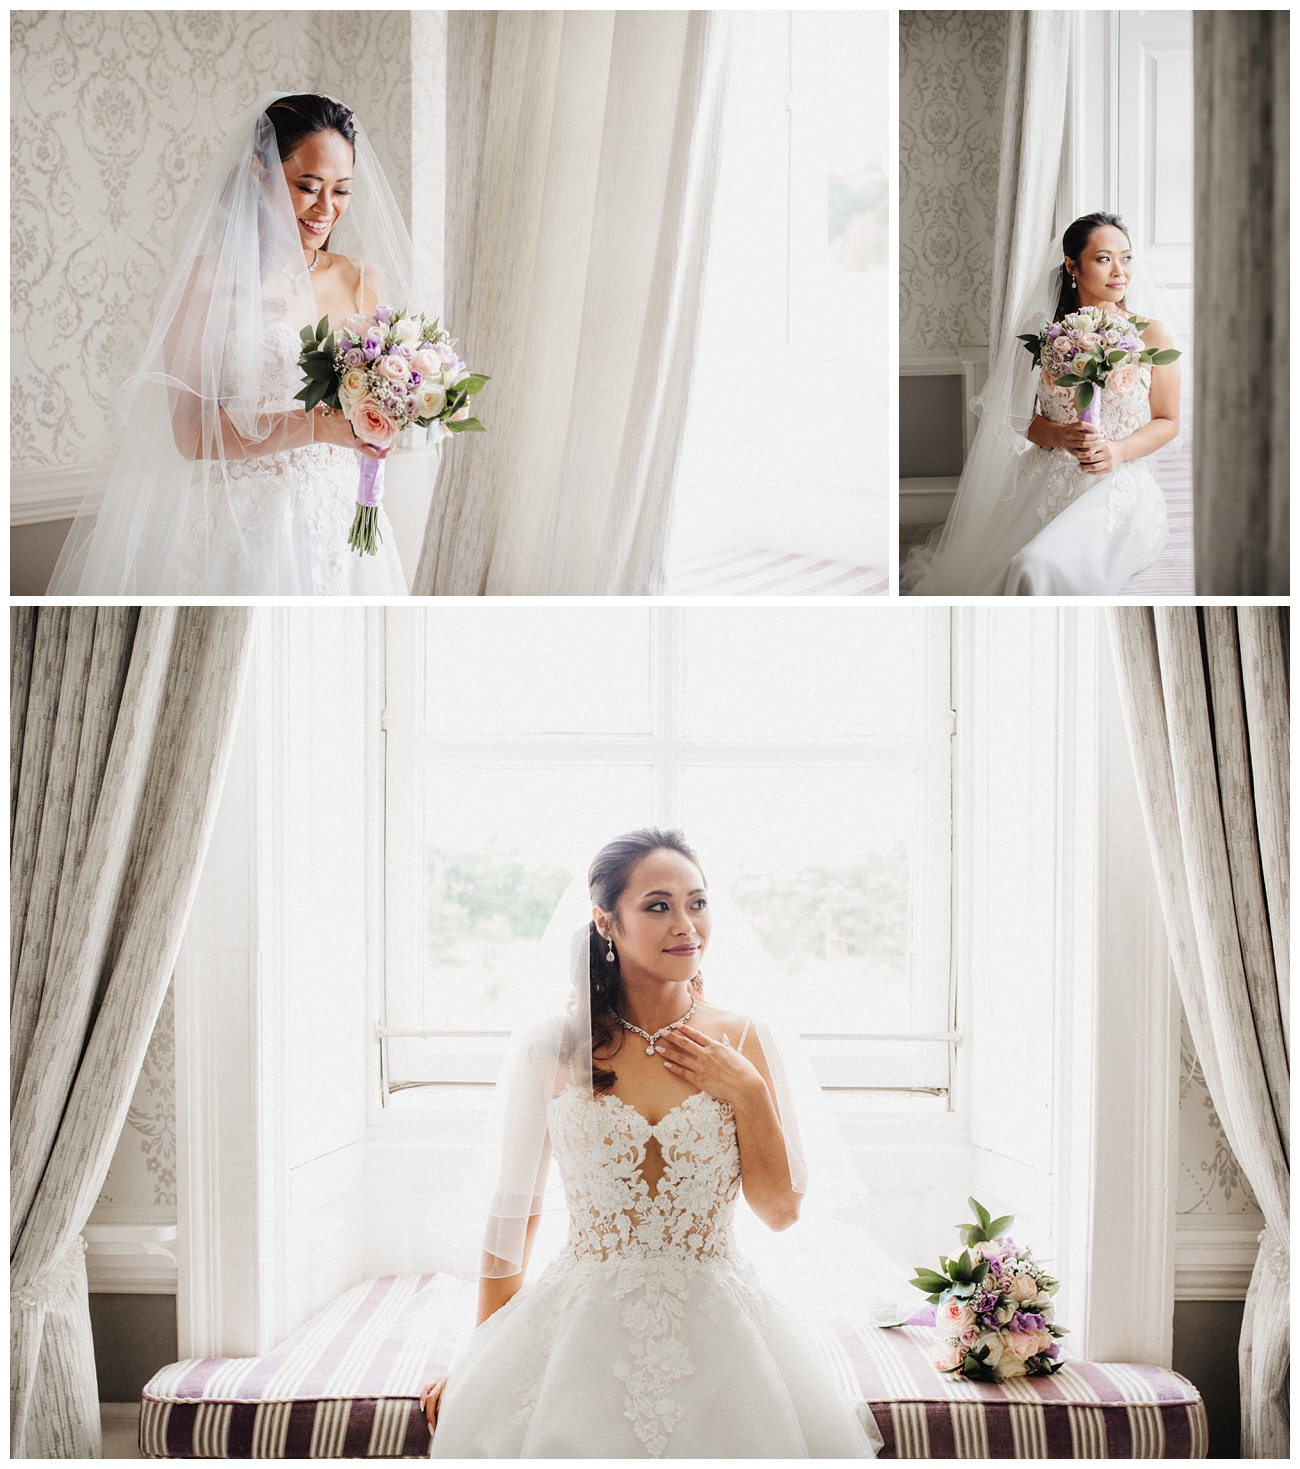 The bride having her portraits in the bridal suite with her wedding dress, flowers and veil on